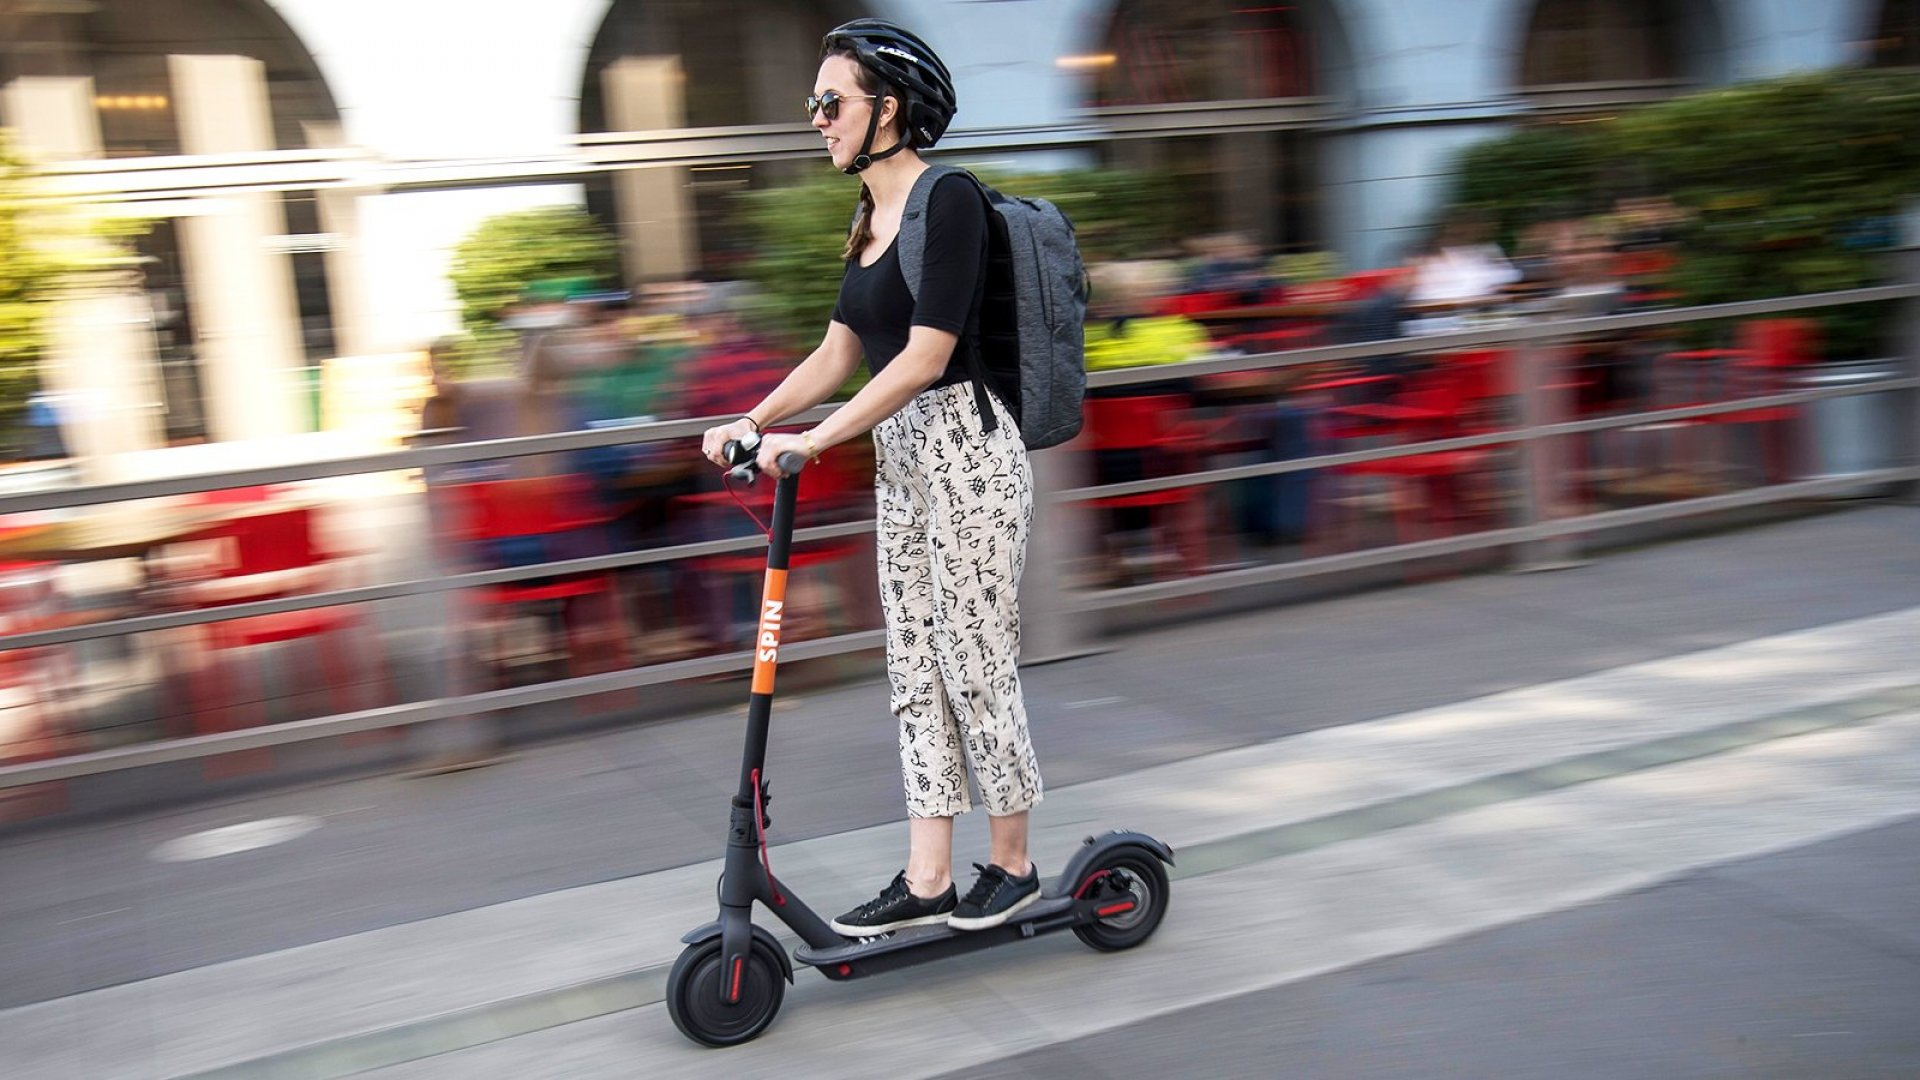 A person rides a Skinny Labs Inc. SpinBike shared electric scooter on the Embarcadero in San Francisco, California.